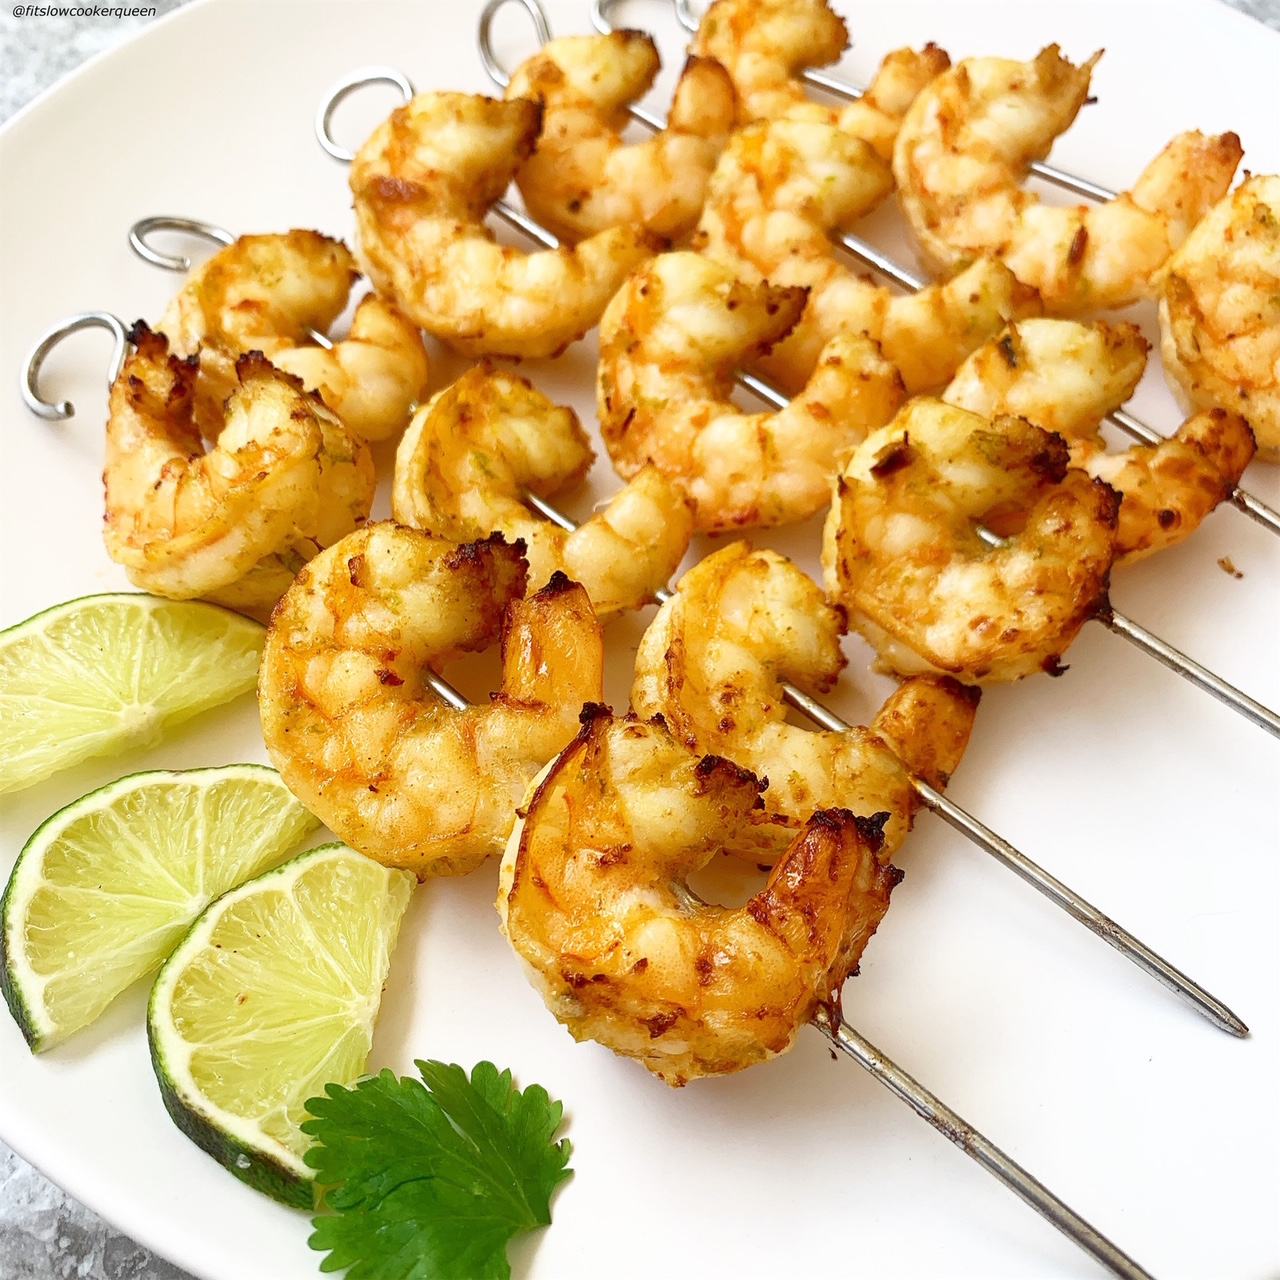 plated pic of cooked shrimp skewers